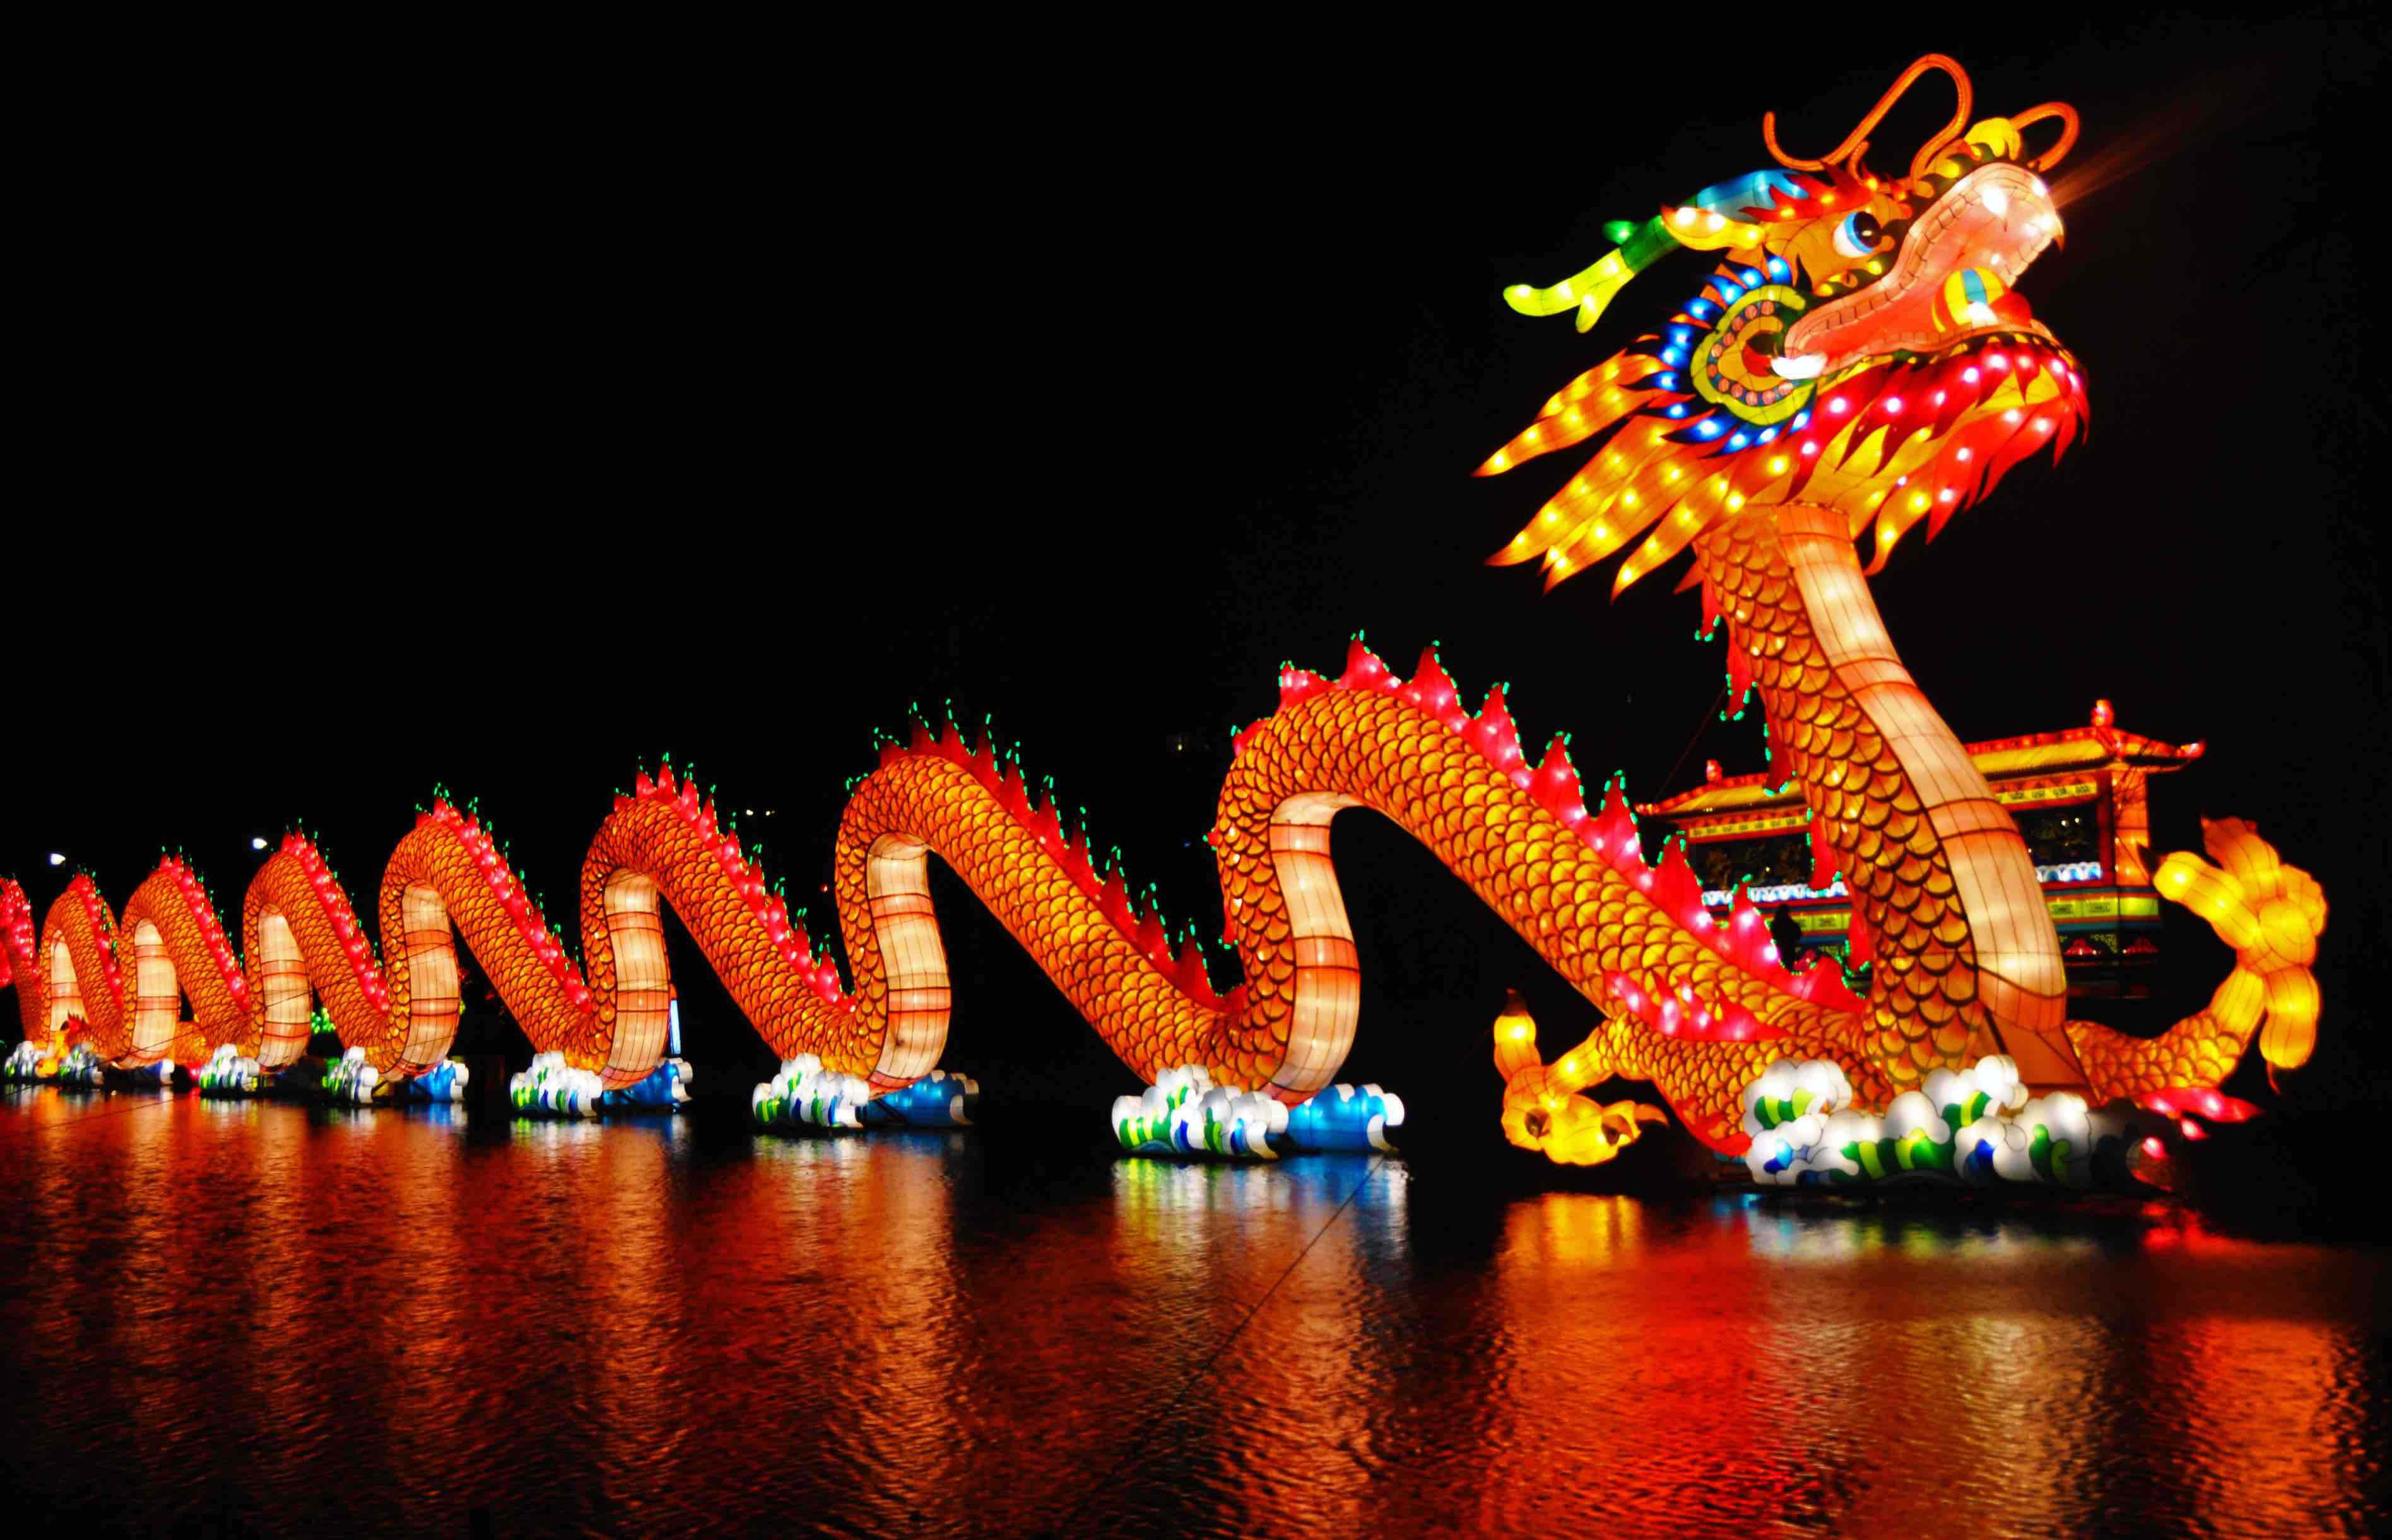 Chinese New Year Festival Best Pictures Wallpapers 3791x2441